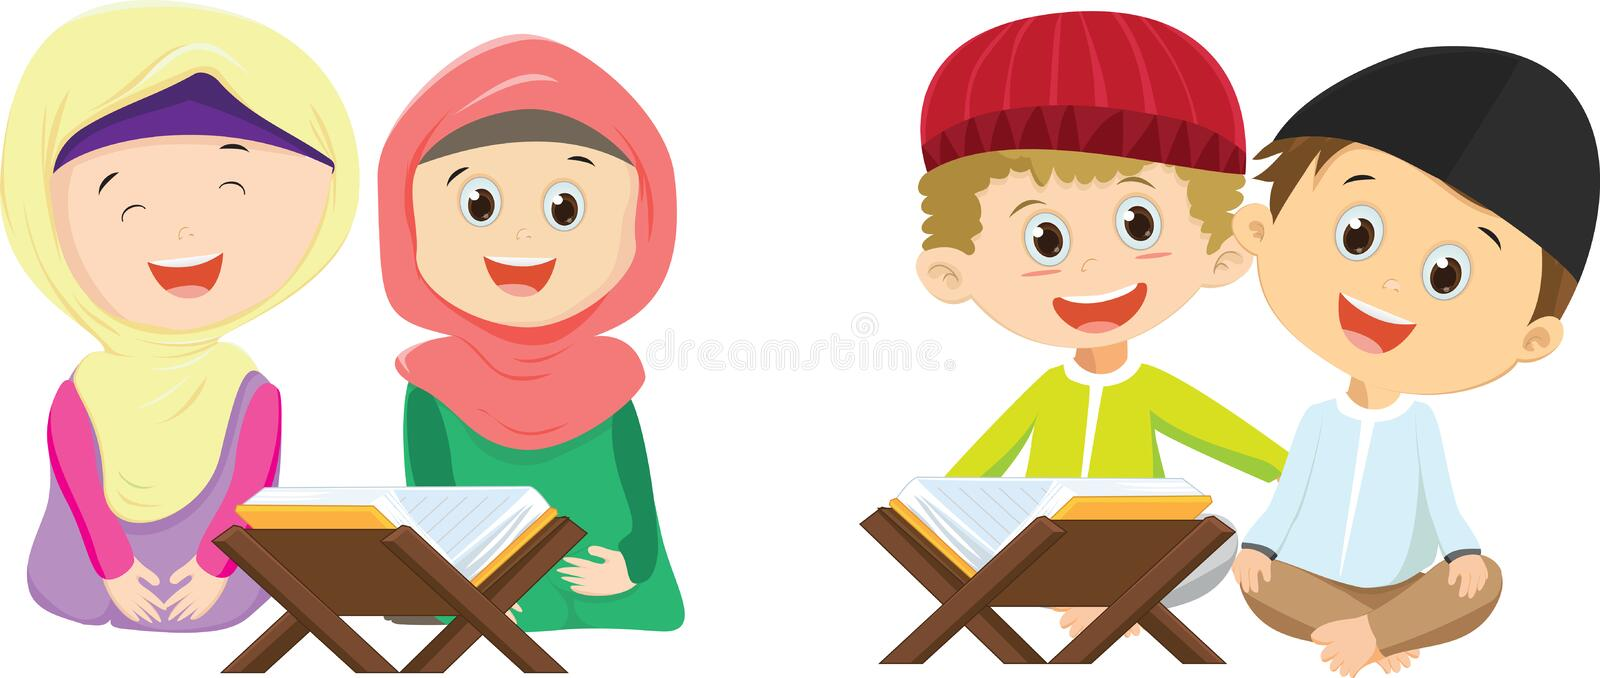 Happy two Muslim girls reading Quran together royalty free illustration